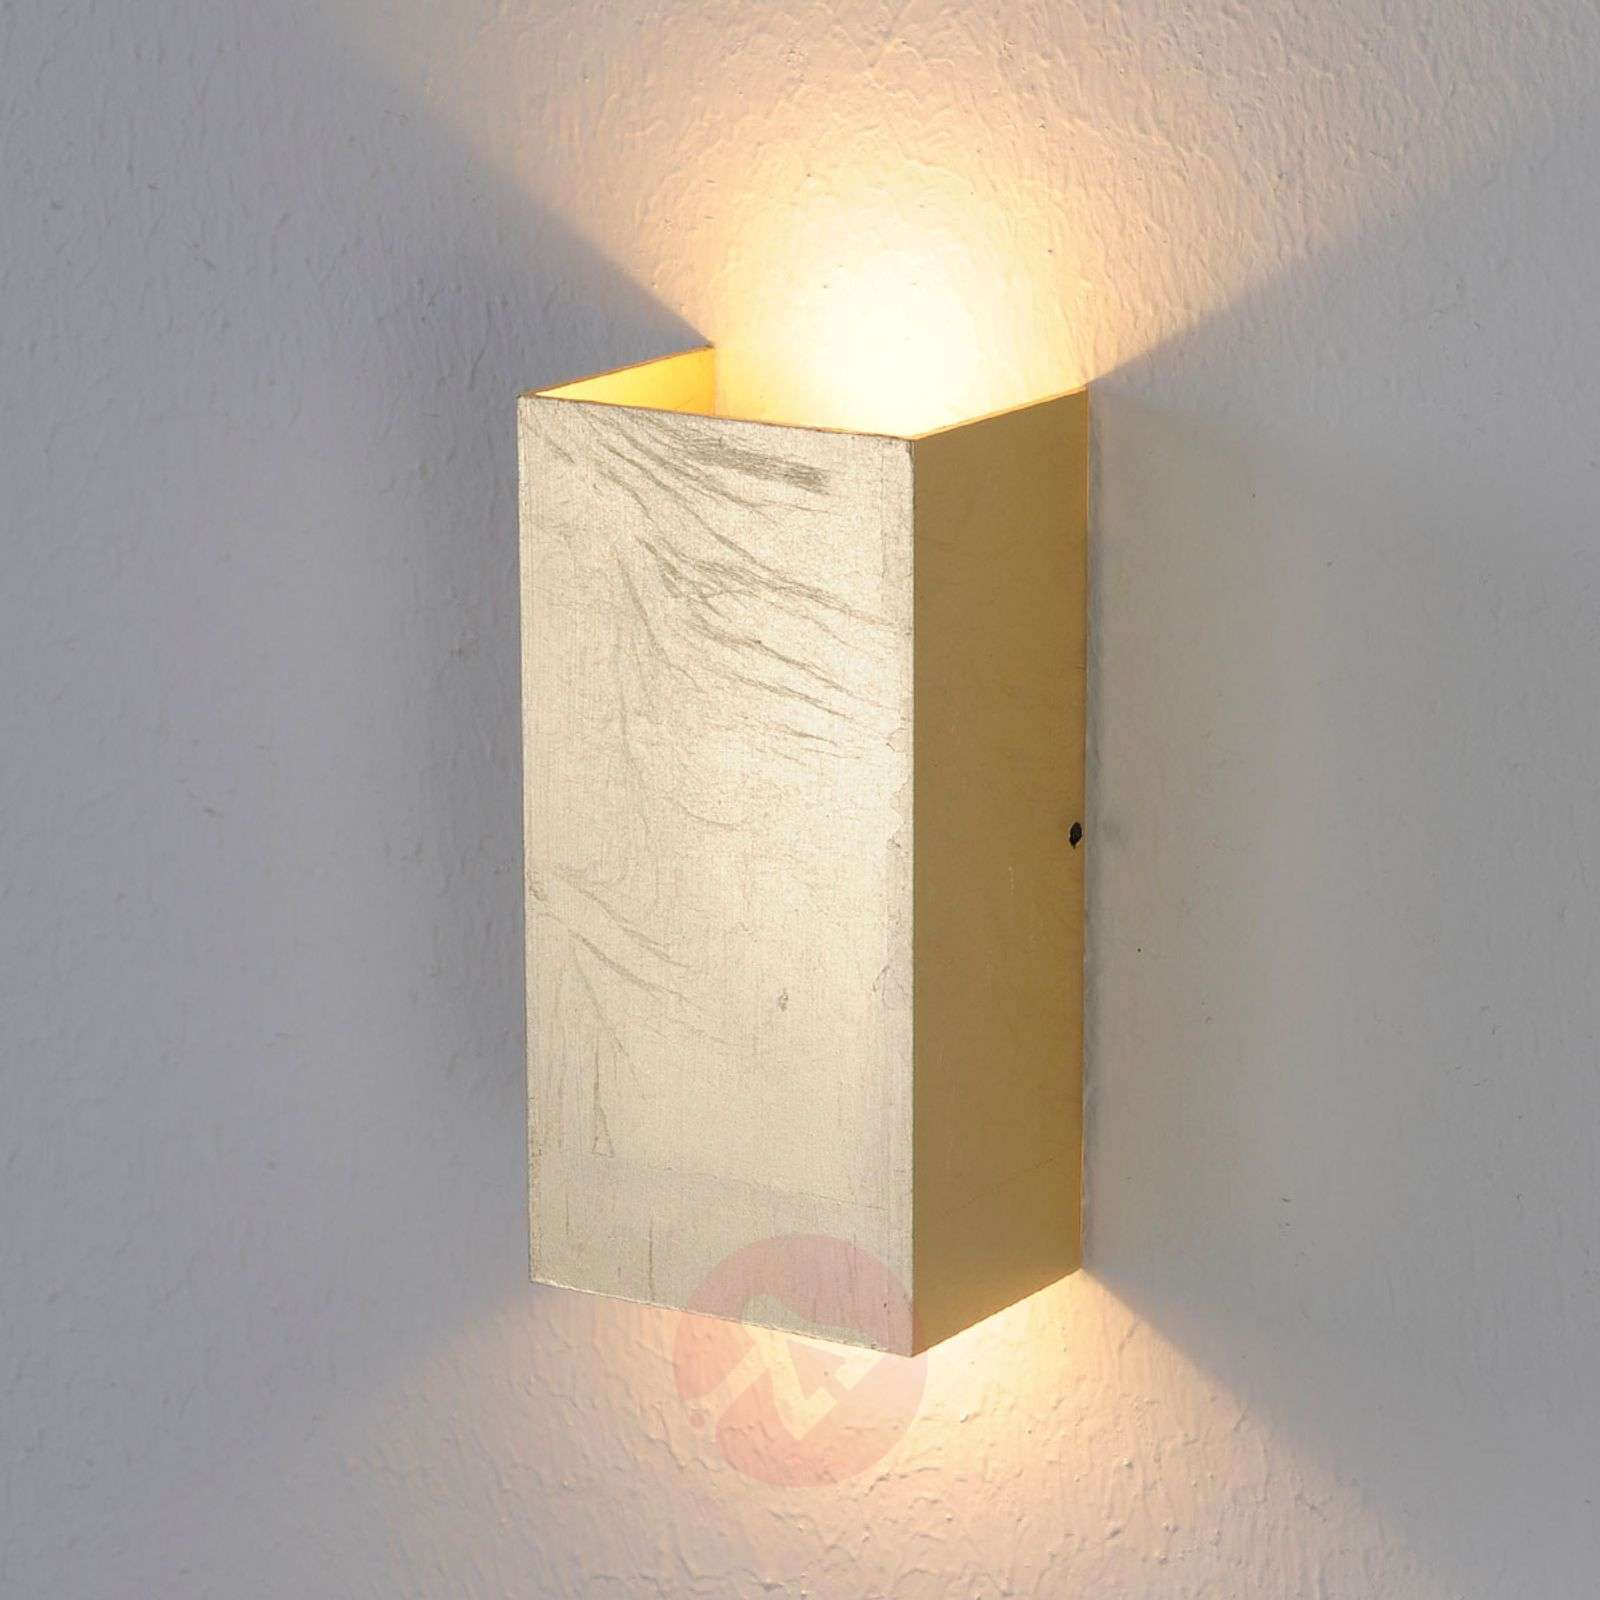 Antique-gold coloured Mira LED wall light Lights.co.uk